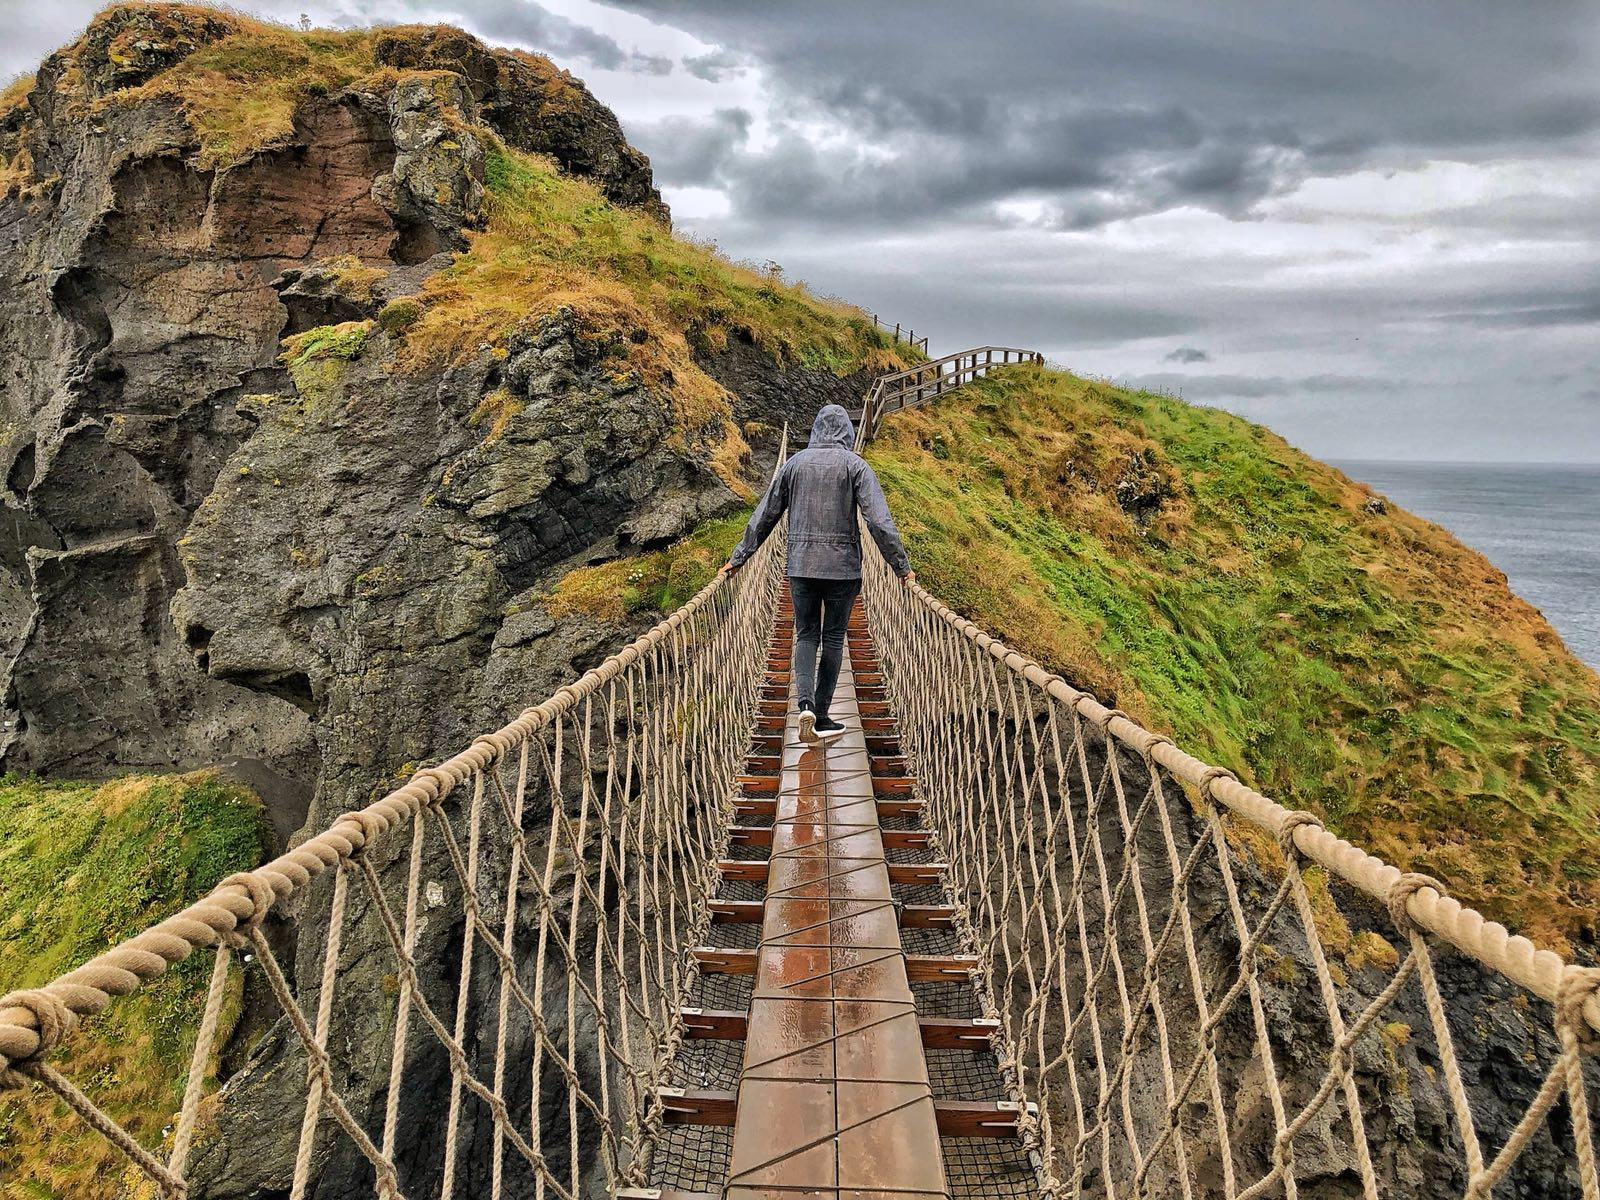 The Crossing of Carrick-a-Rede Bridge